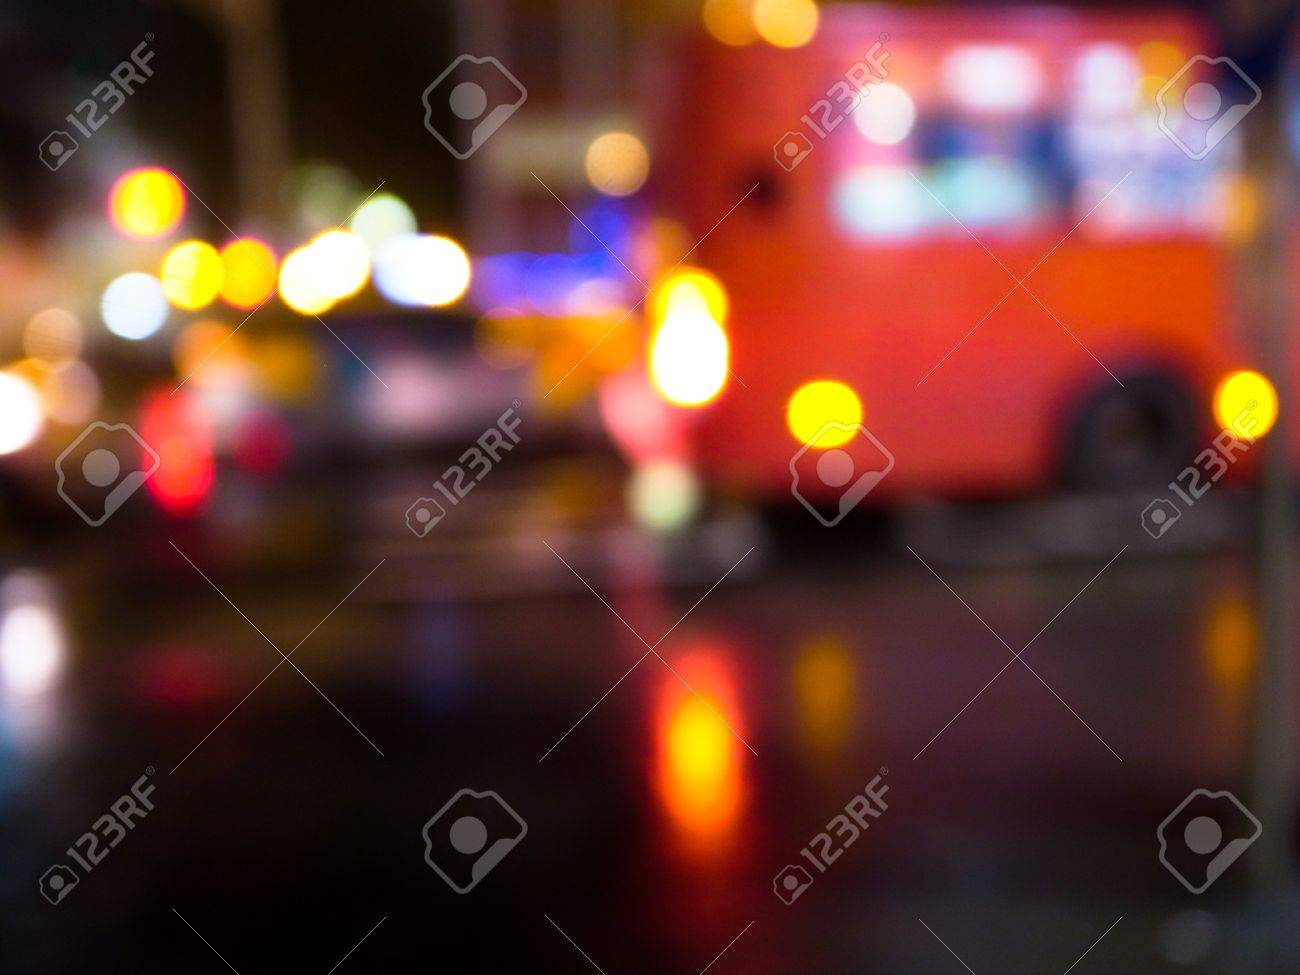 Artistic style-Defocused urban abstract texture background for your design Stock Photo - 15544658